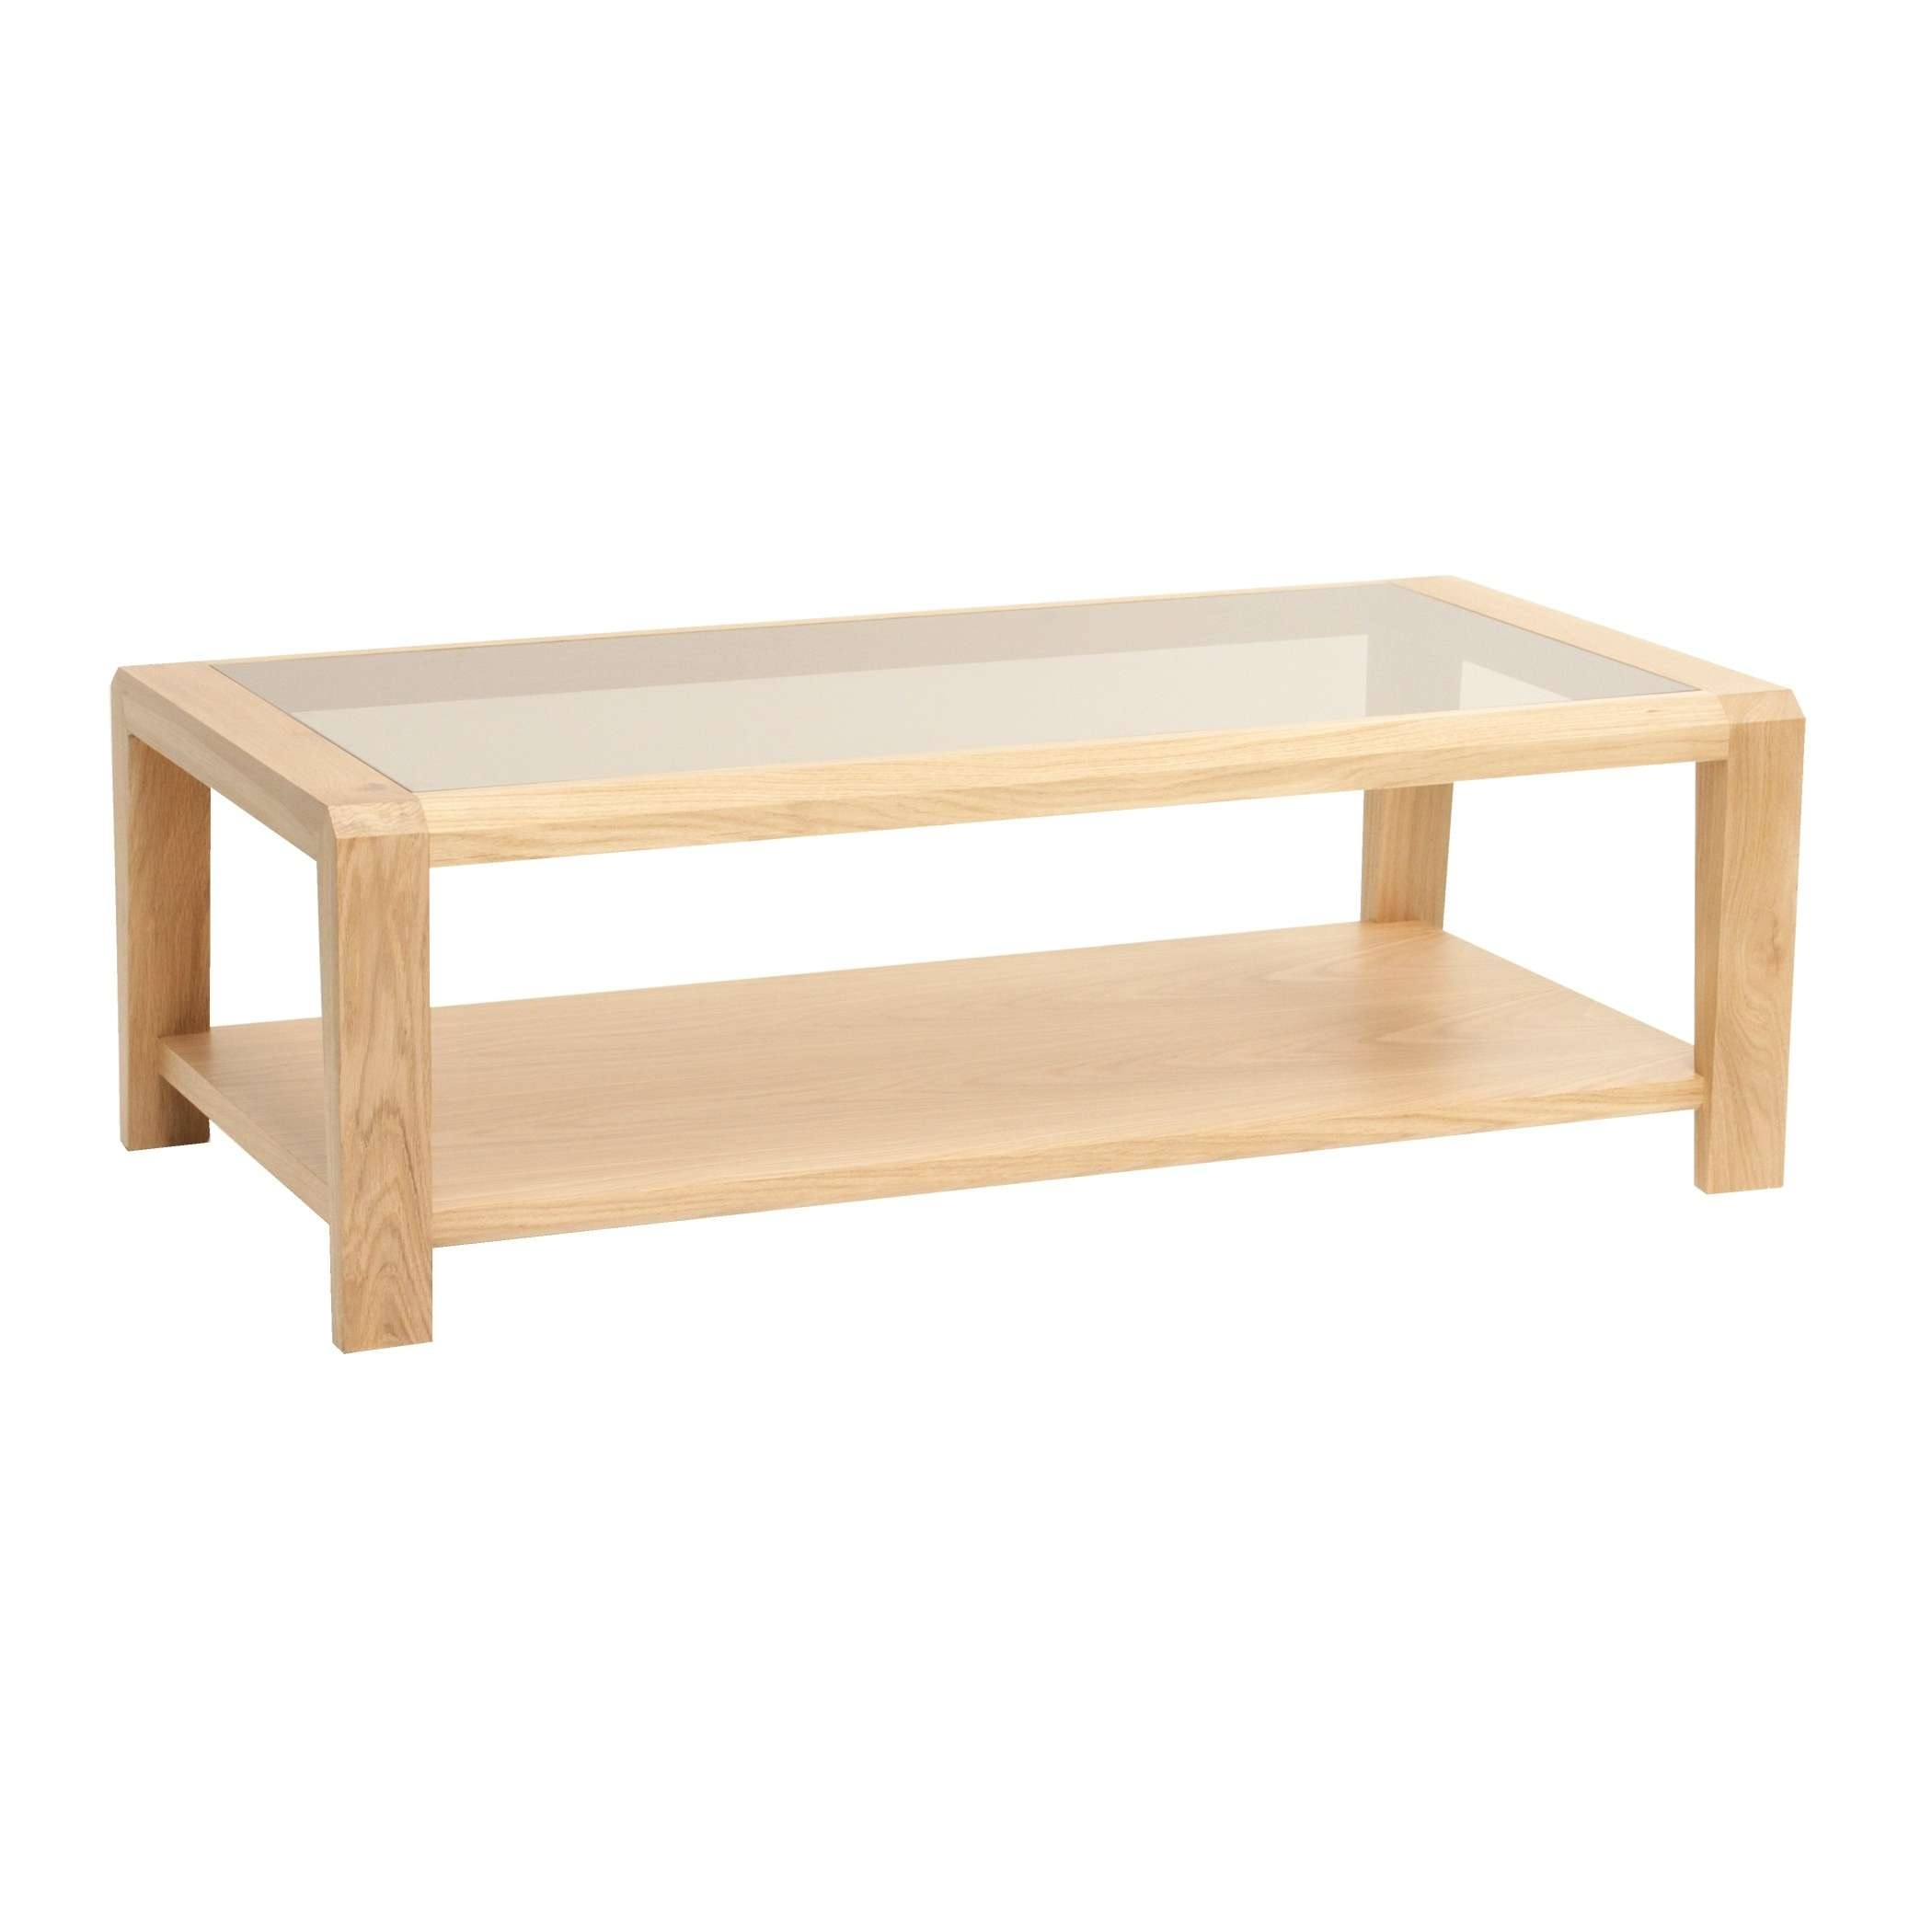 Glass Top Solid Oak Coffee Table Is This Lovely Recycled Wood Iron Regarding Famous Contemporary Oak Coffee Table (View 10 of 20)